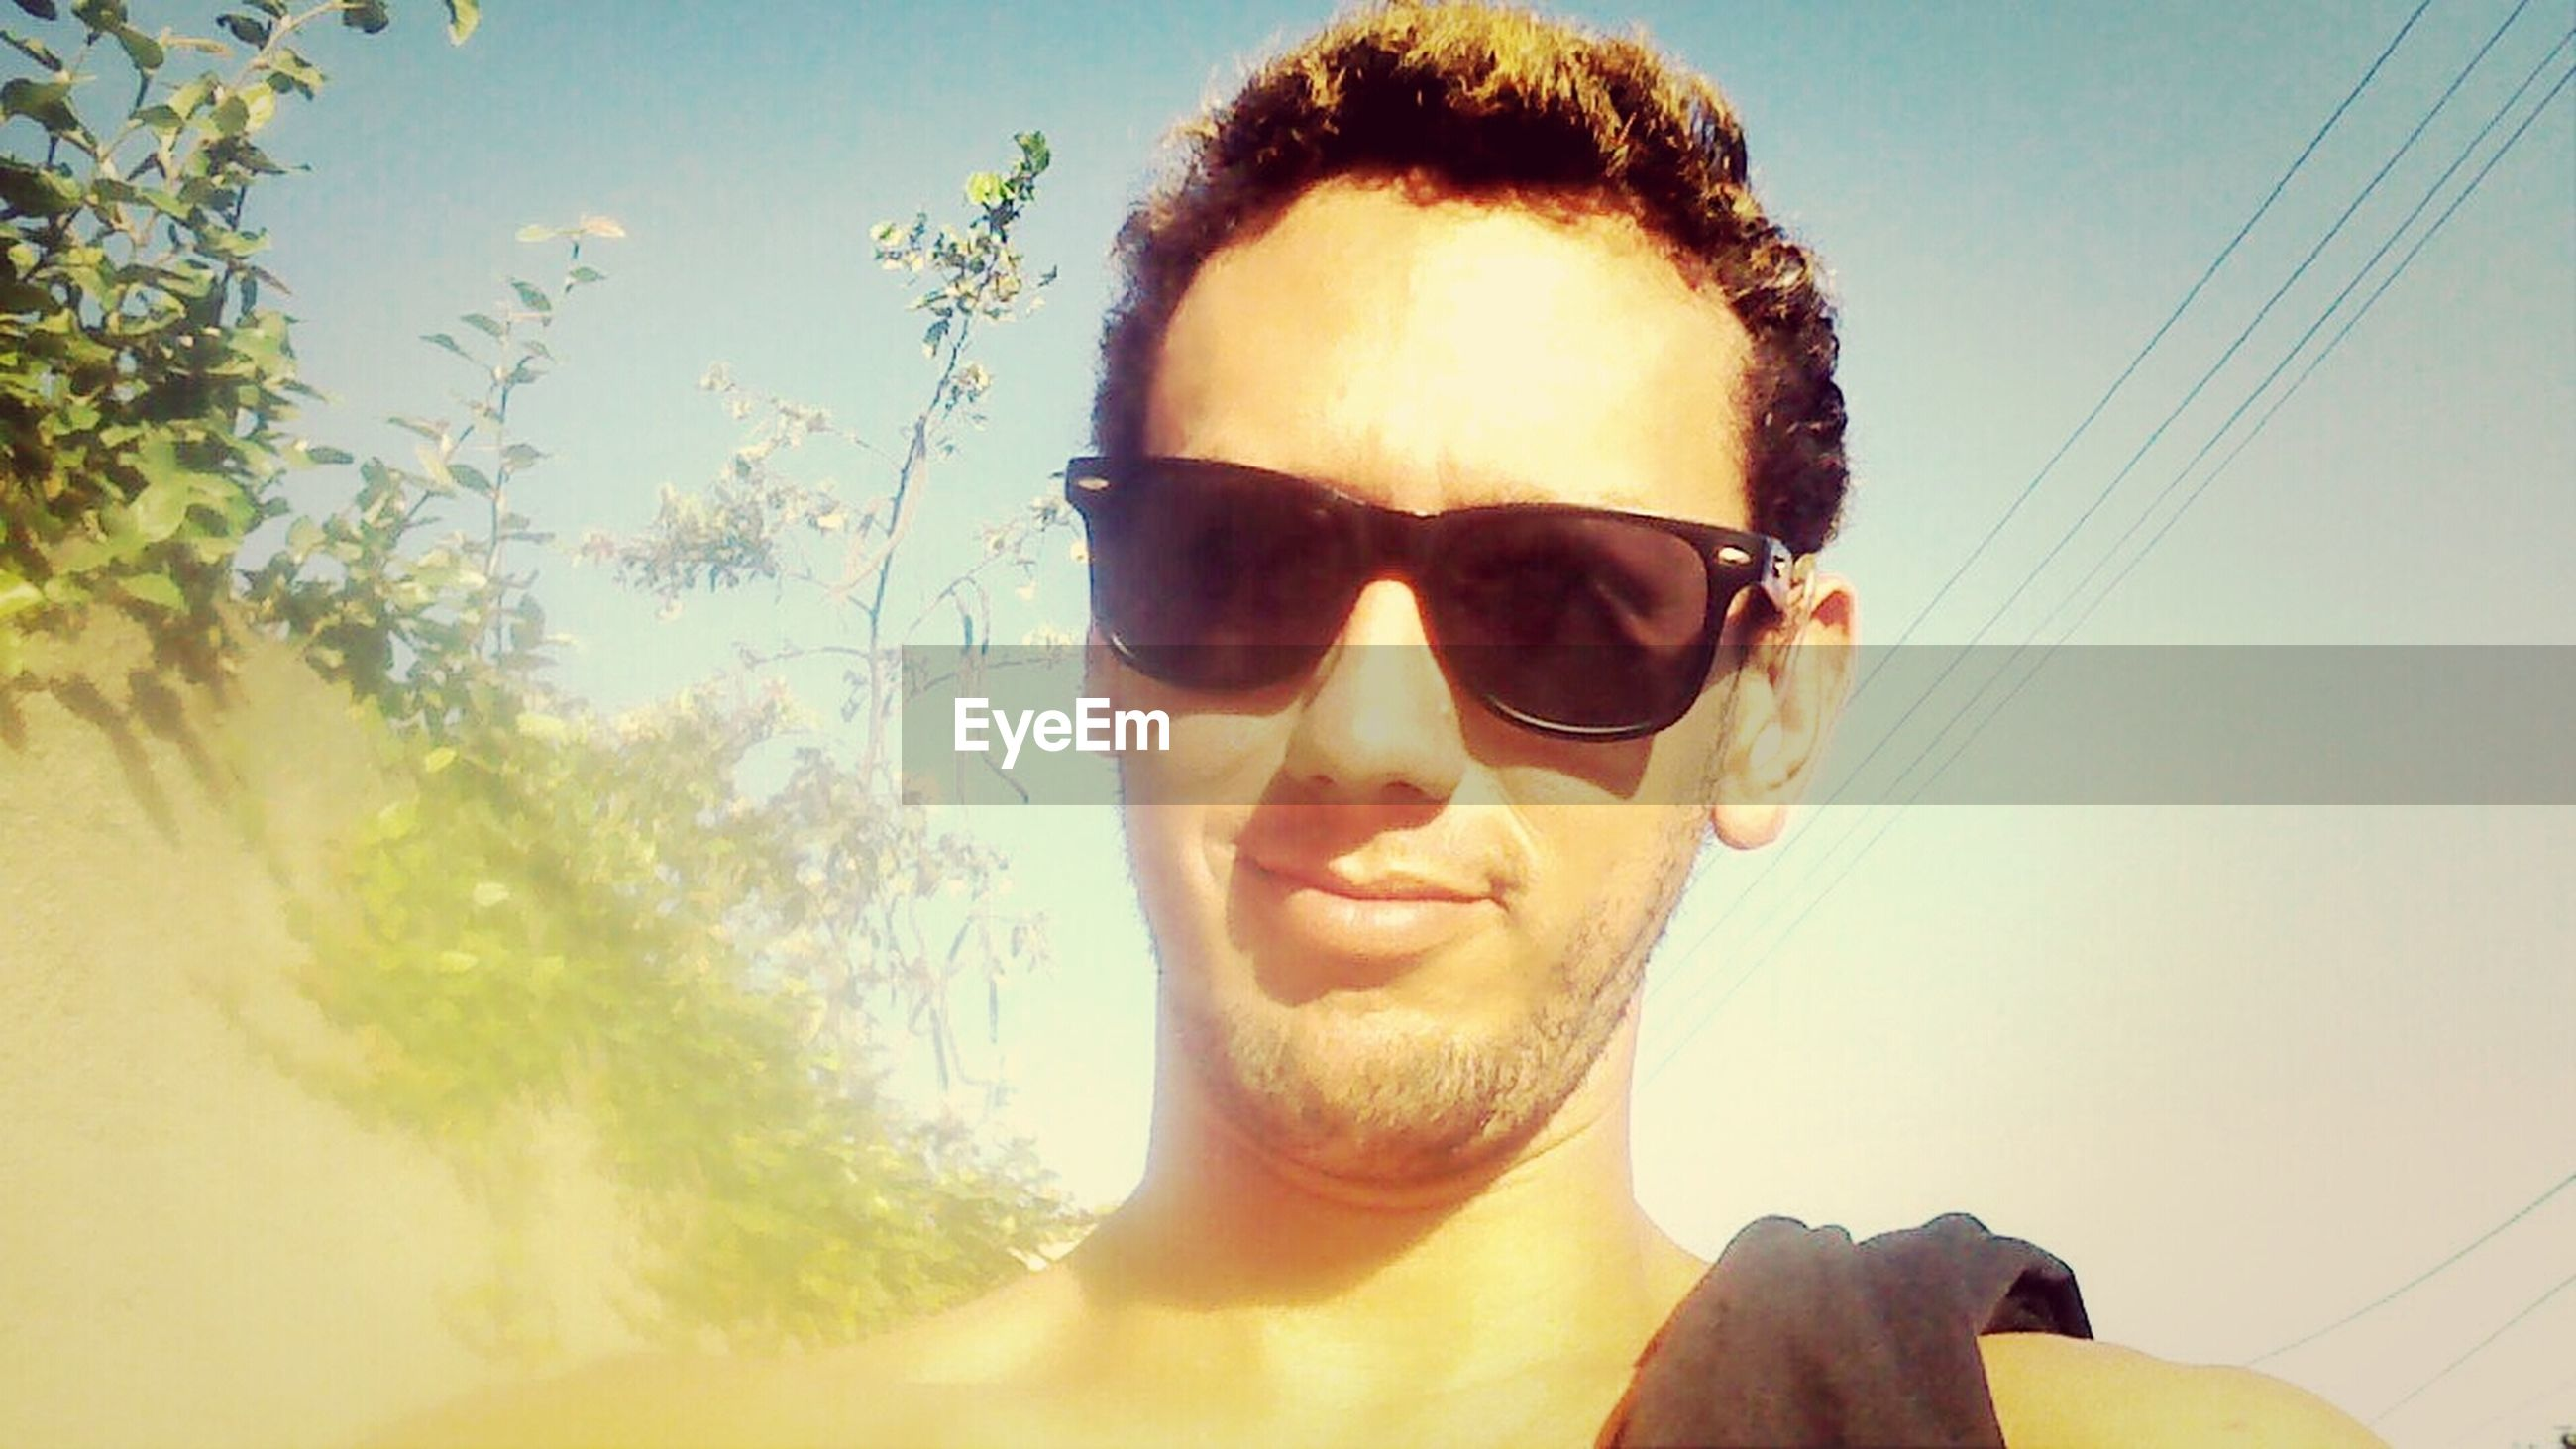 headshot, young adult, portrait, looking at camera, lifestyles, sunglasses, person, front view, leisure activity, young men, close-up, sunlight, mid adult, head and shoulders, mid adult men, sunbeam, sky